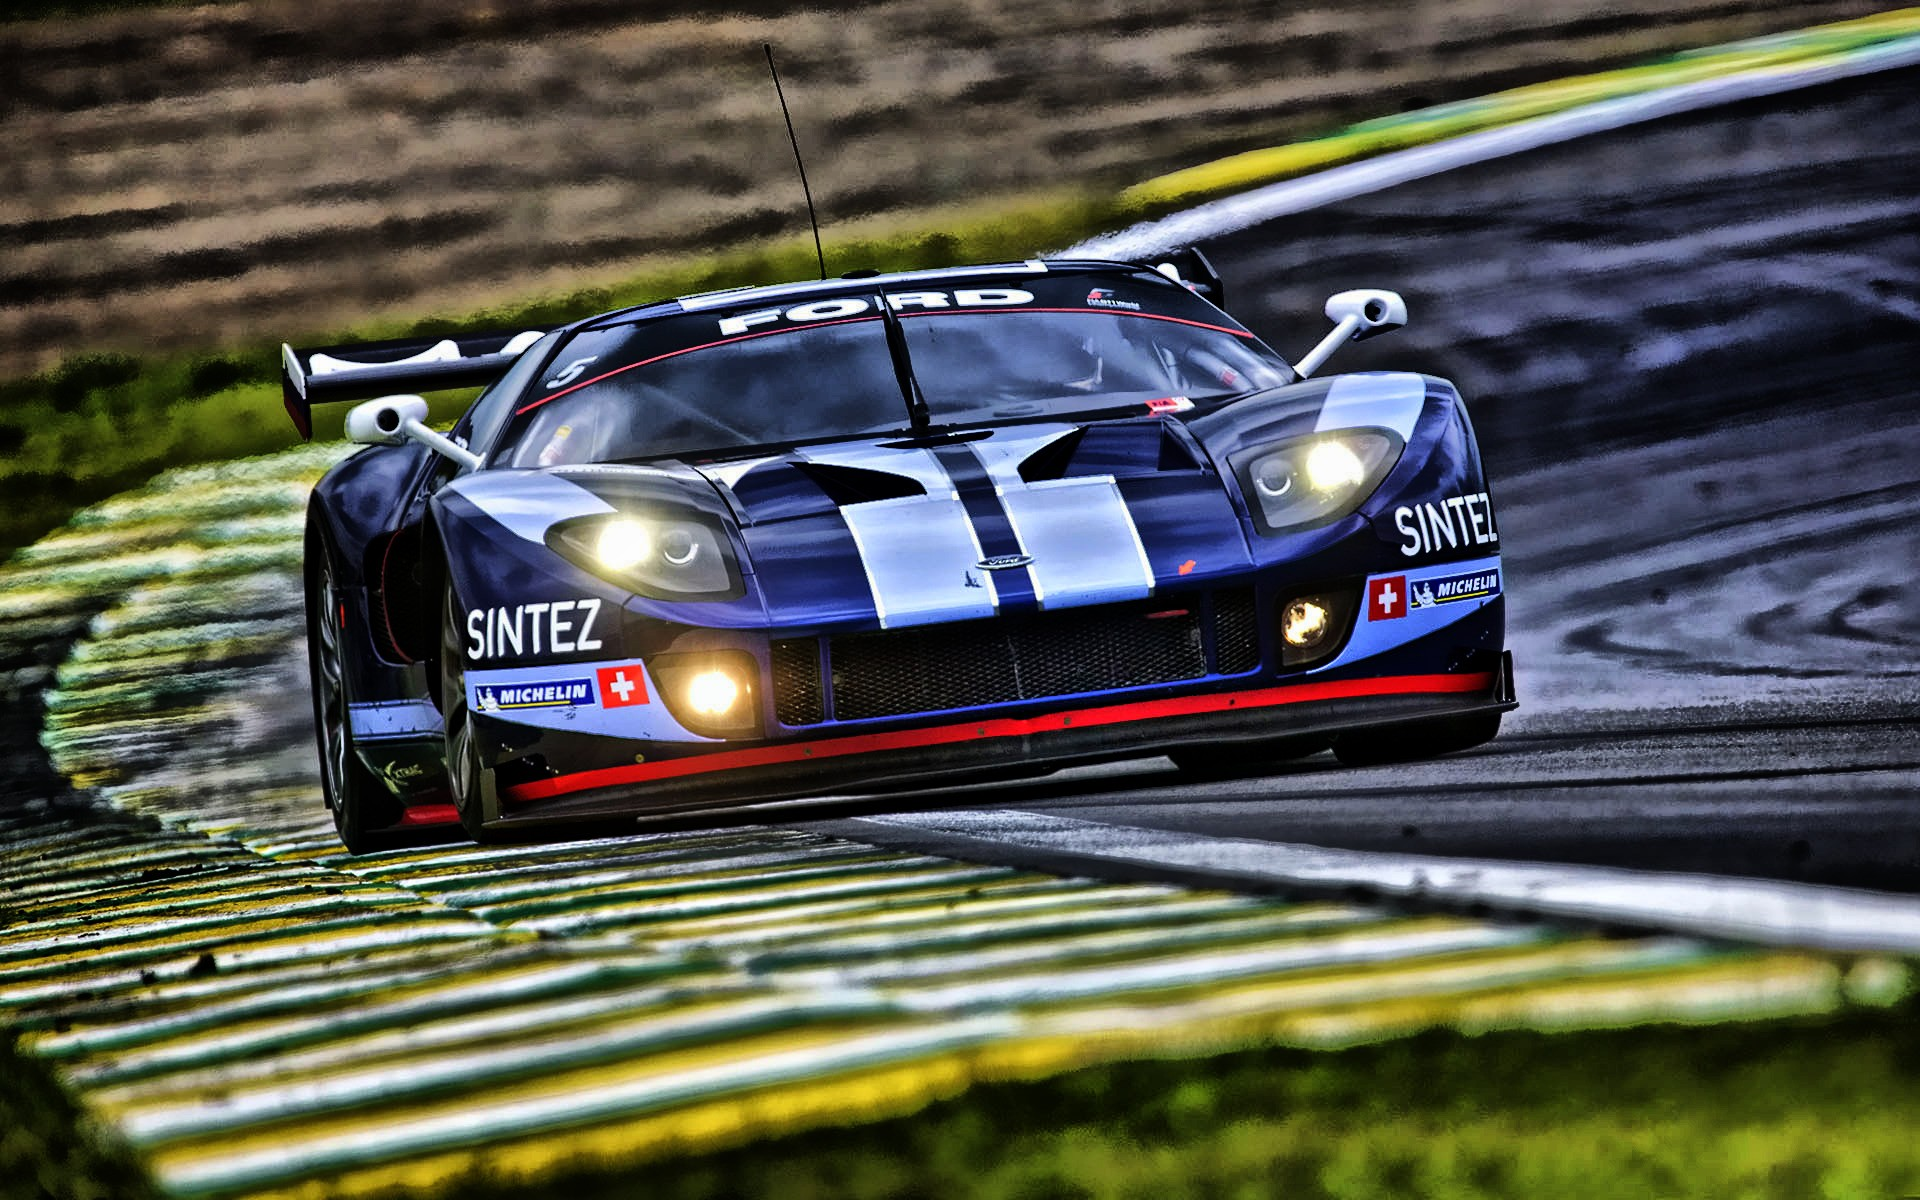 High Preformence Ford Wallpaper 800x384: [44+] Ford Racing Wallpaper On WallpaperSafari